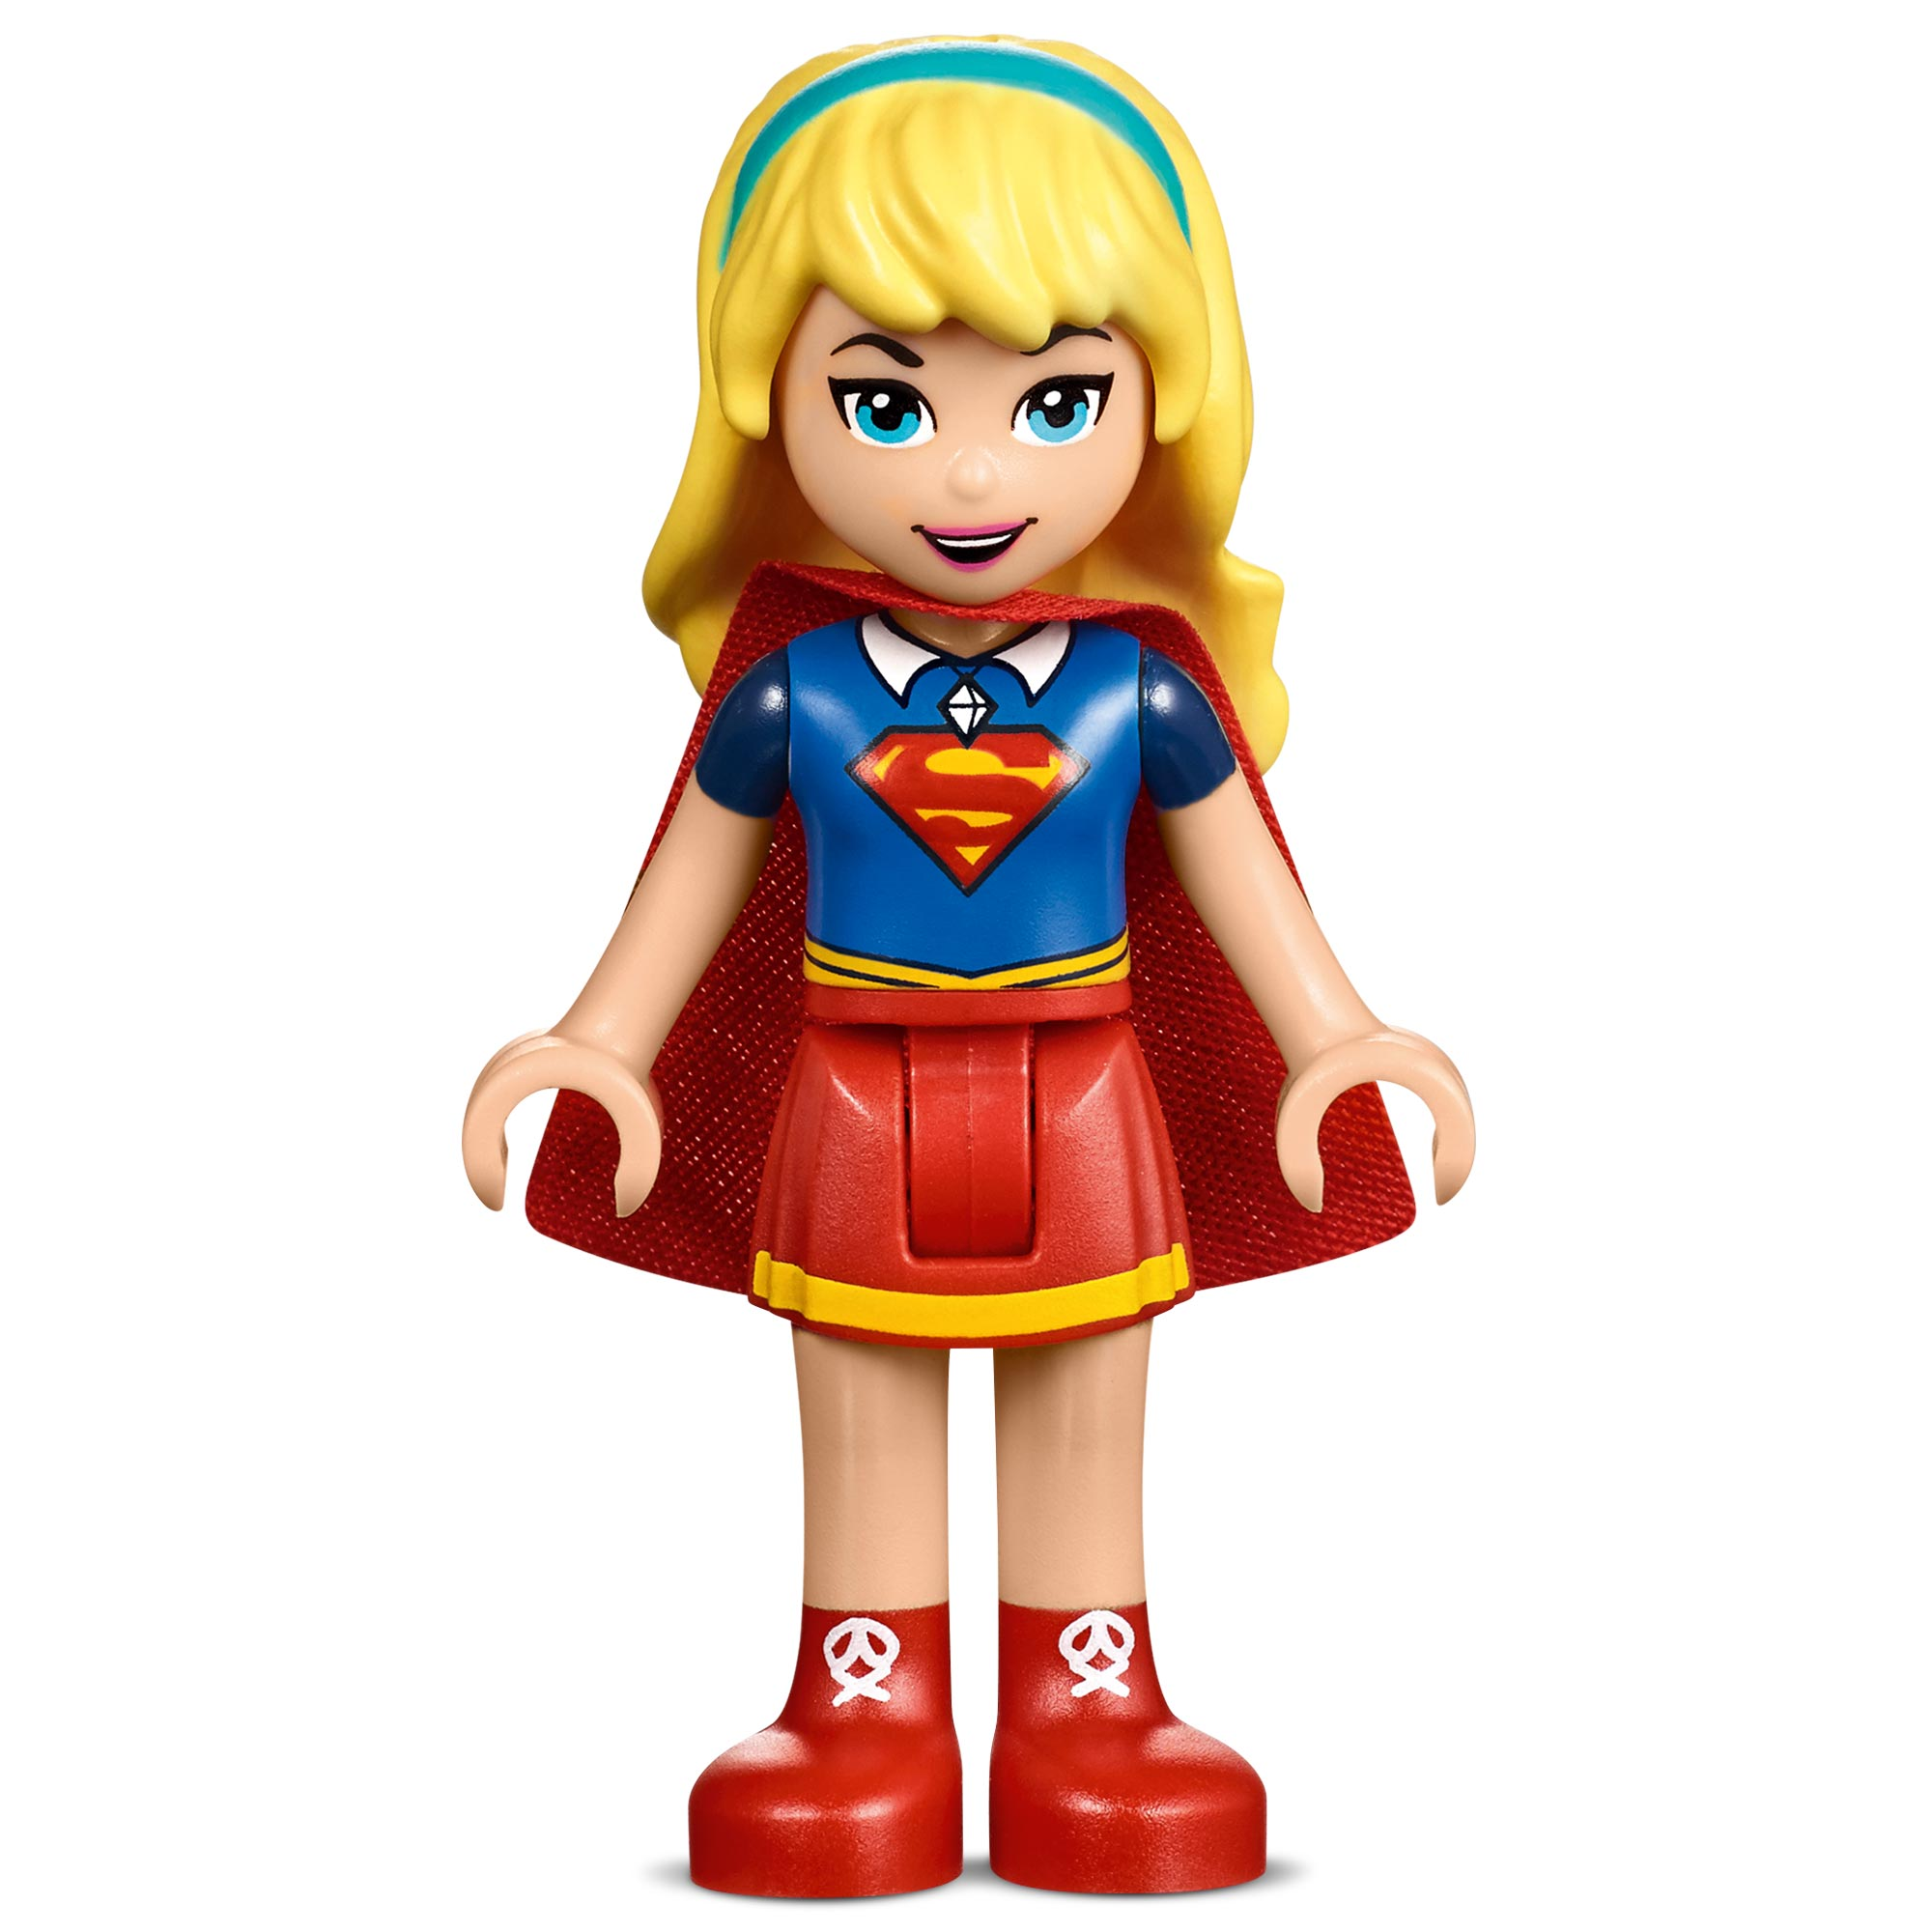 dc hi res images including figures fbtb